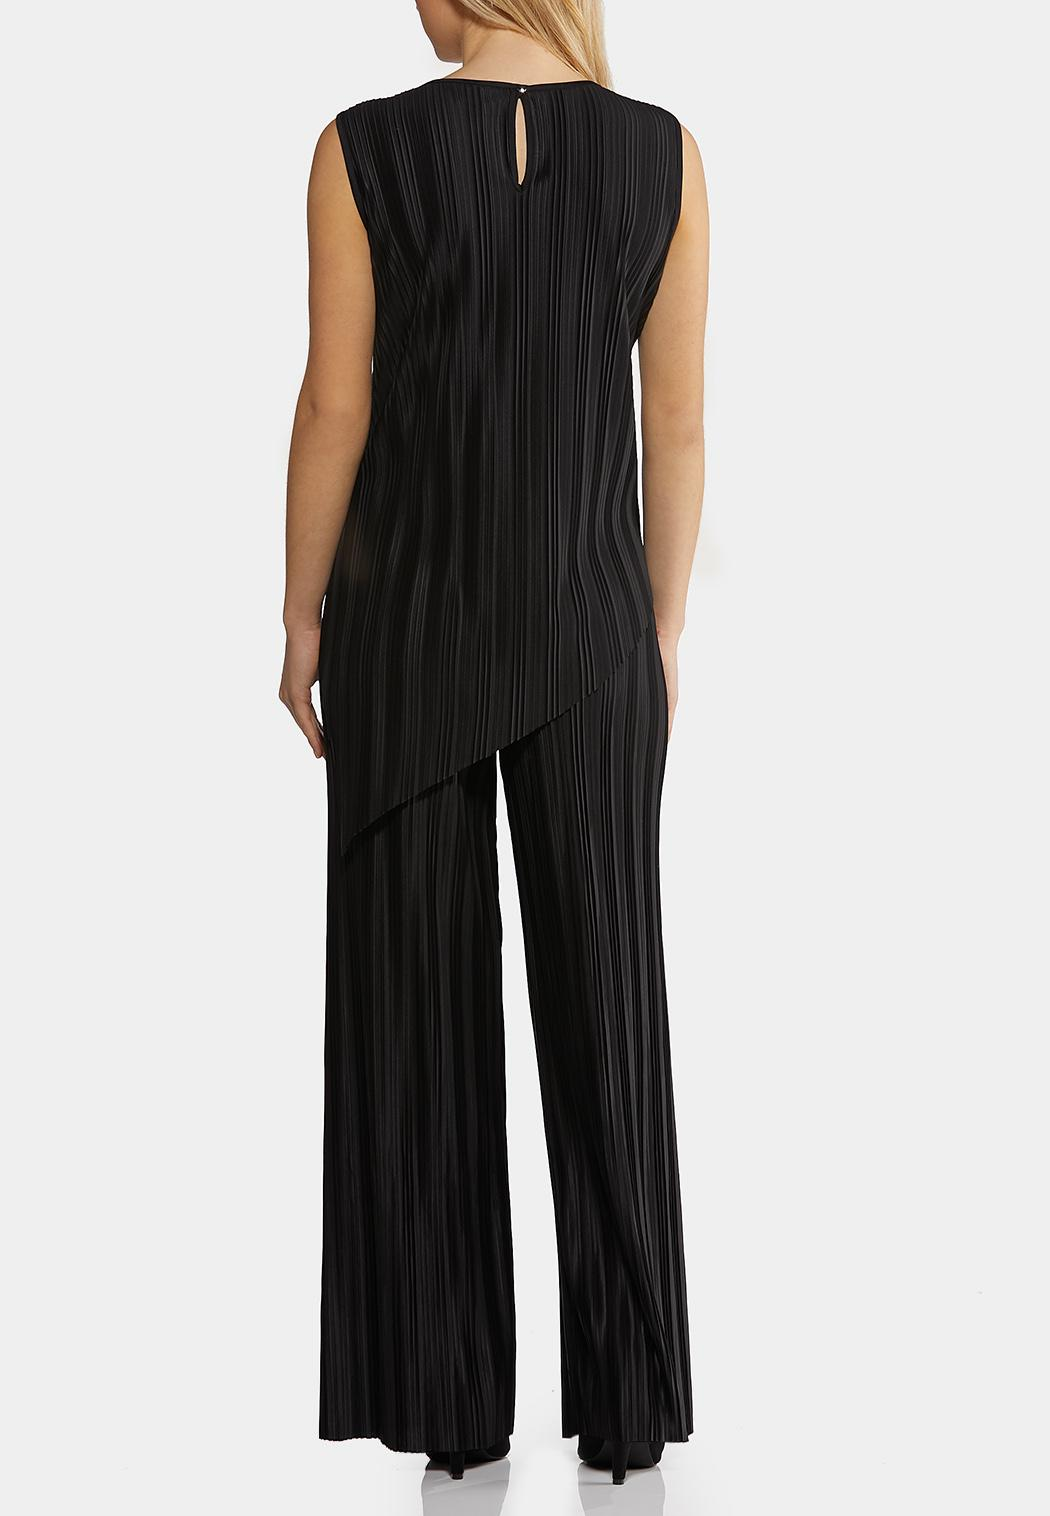 Black Pleated Pant Set (Item #44212099)